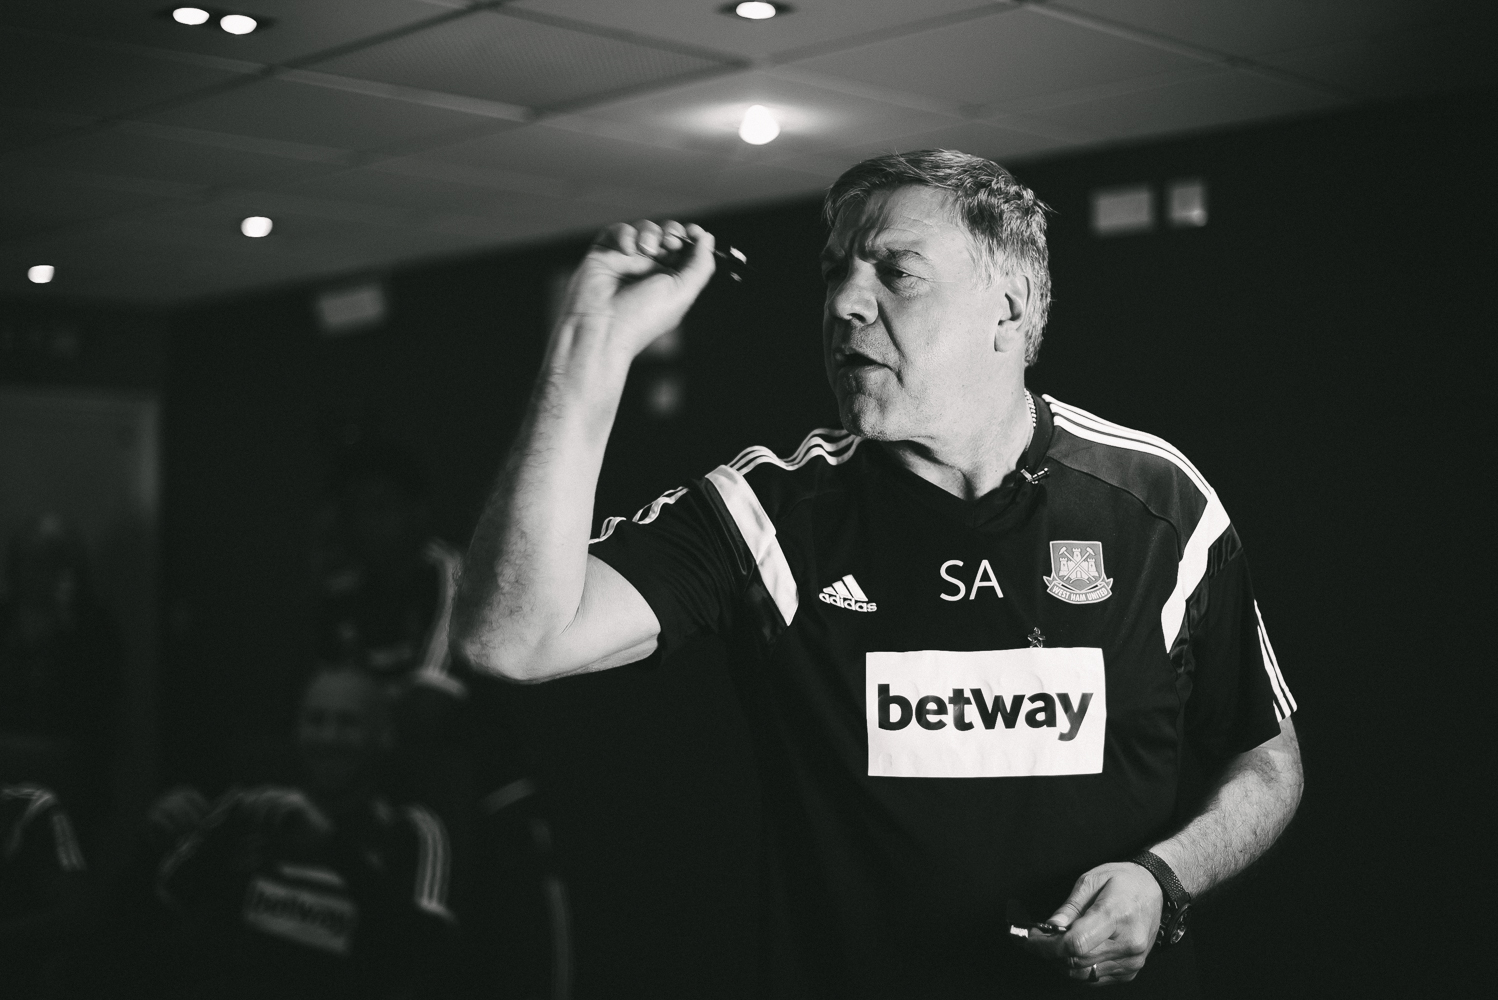 Betway_WestHam_Alex_Wallace_Photography_0193.jpg